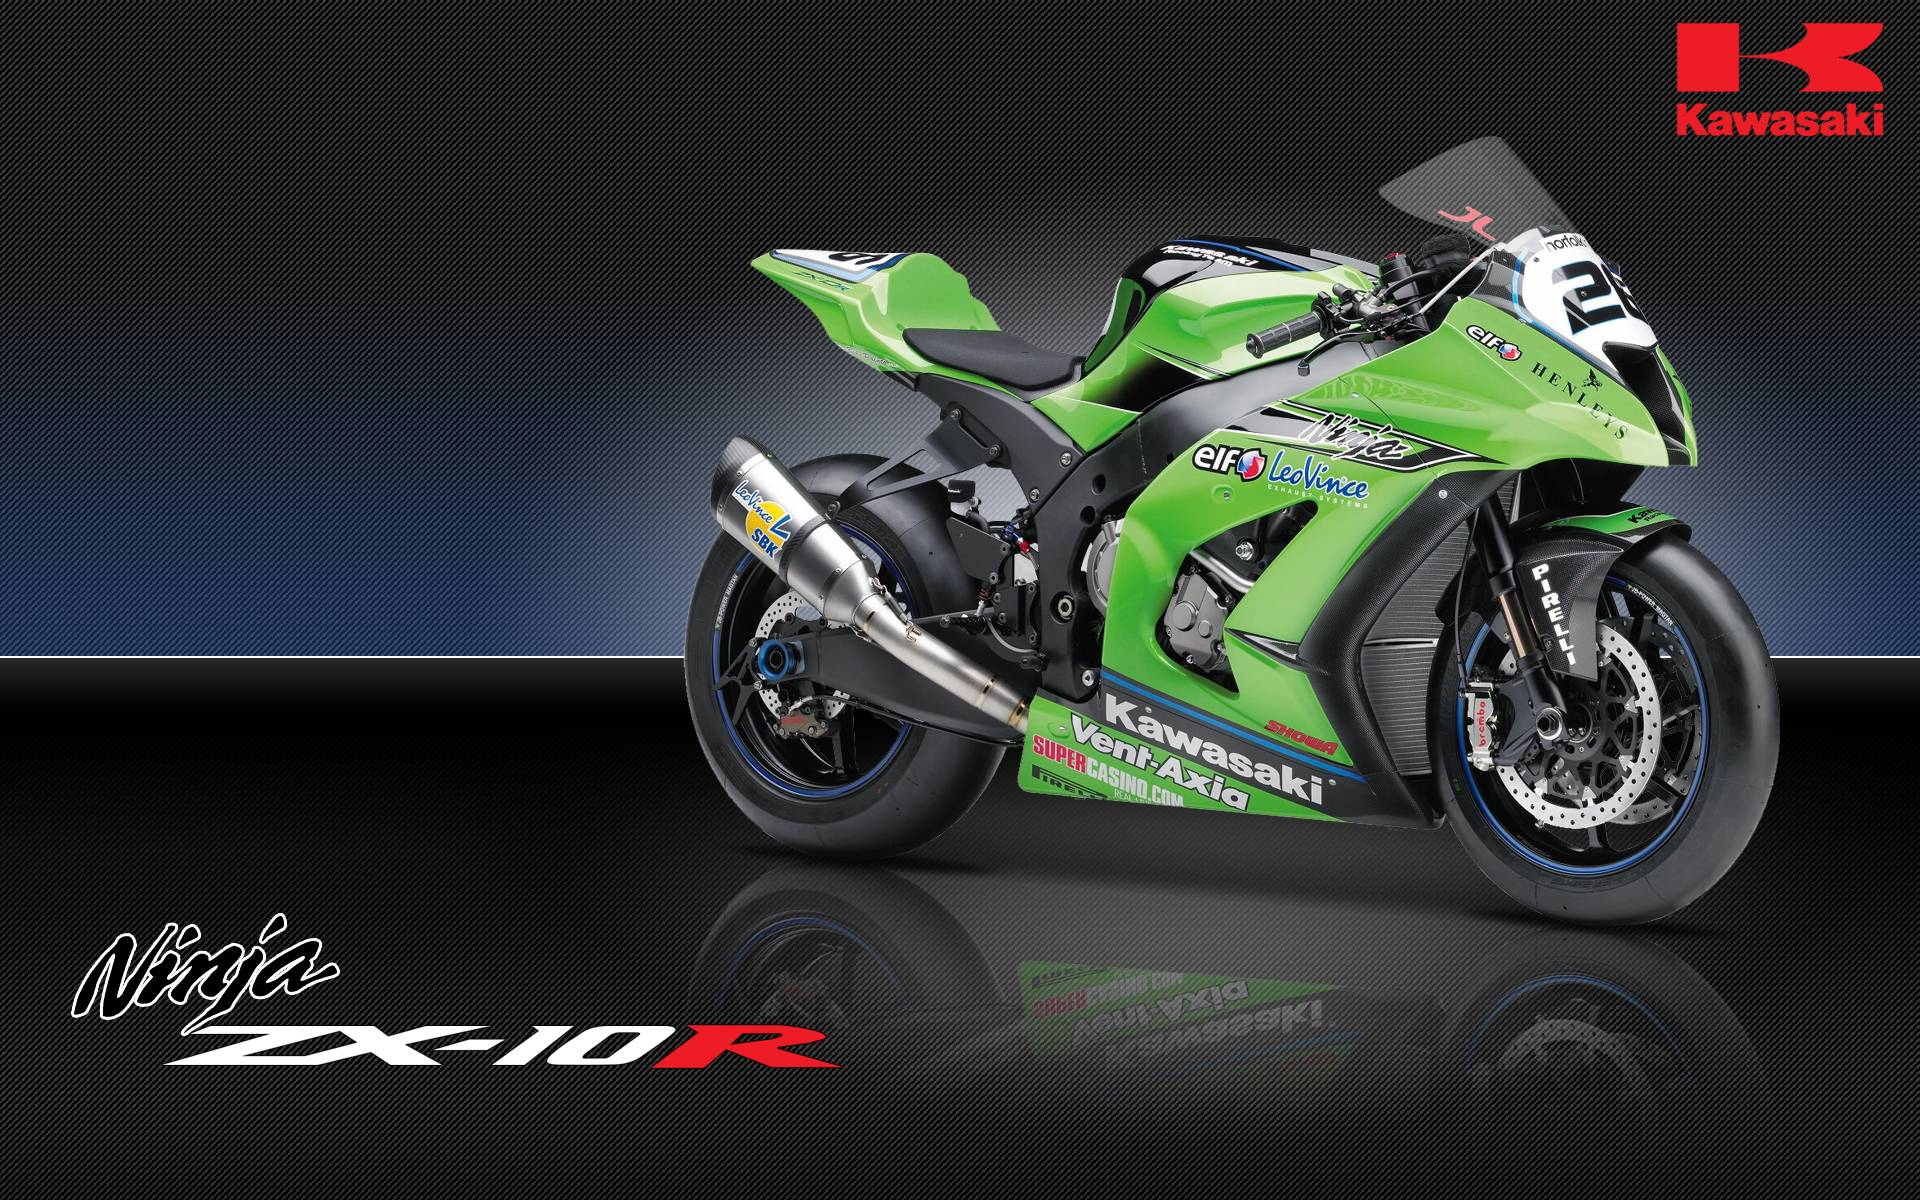 kawasaki wallpapers - wallpaper cave